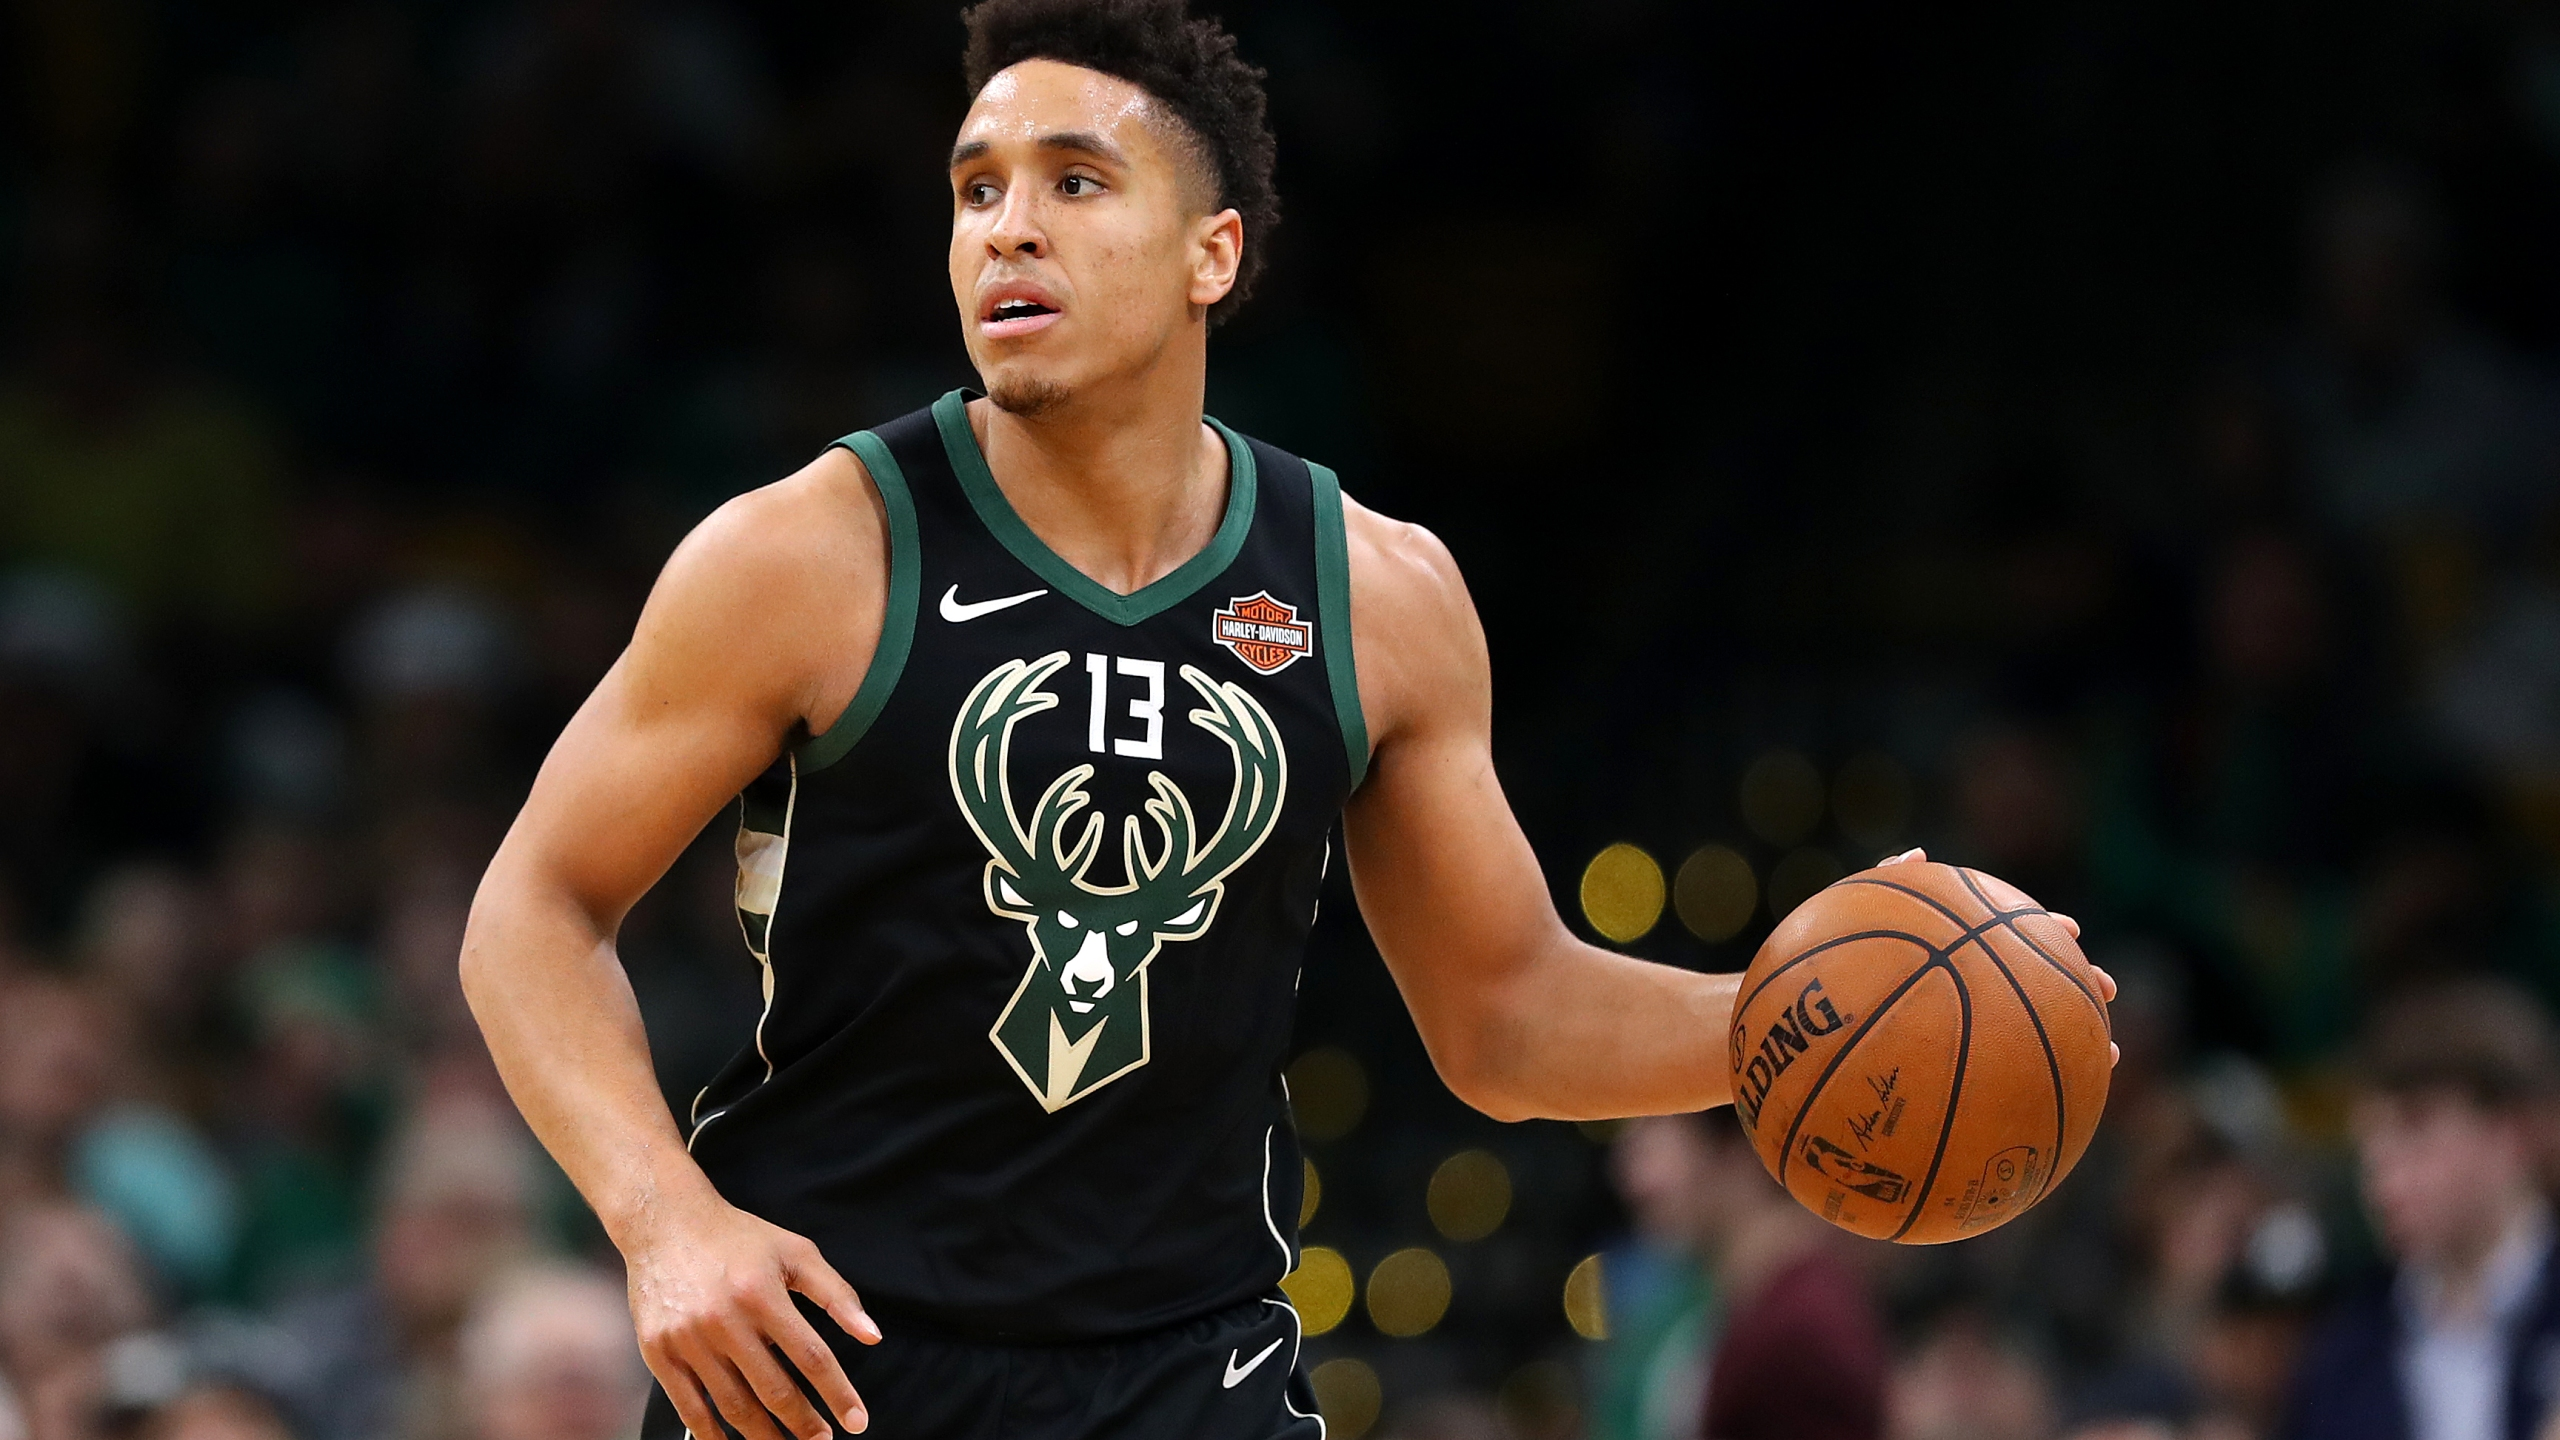 Malcolm Brogdon gets traded to Pacers